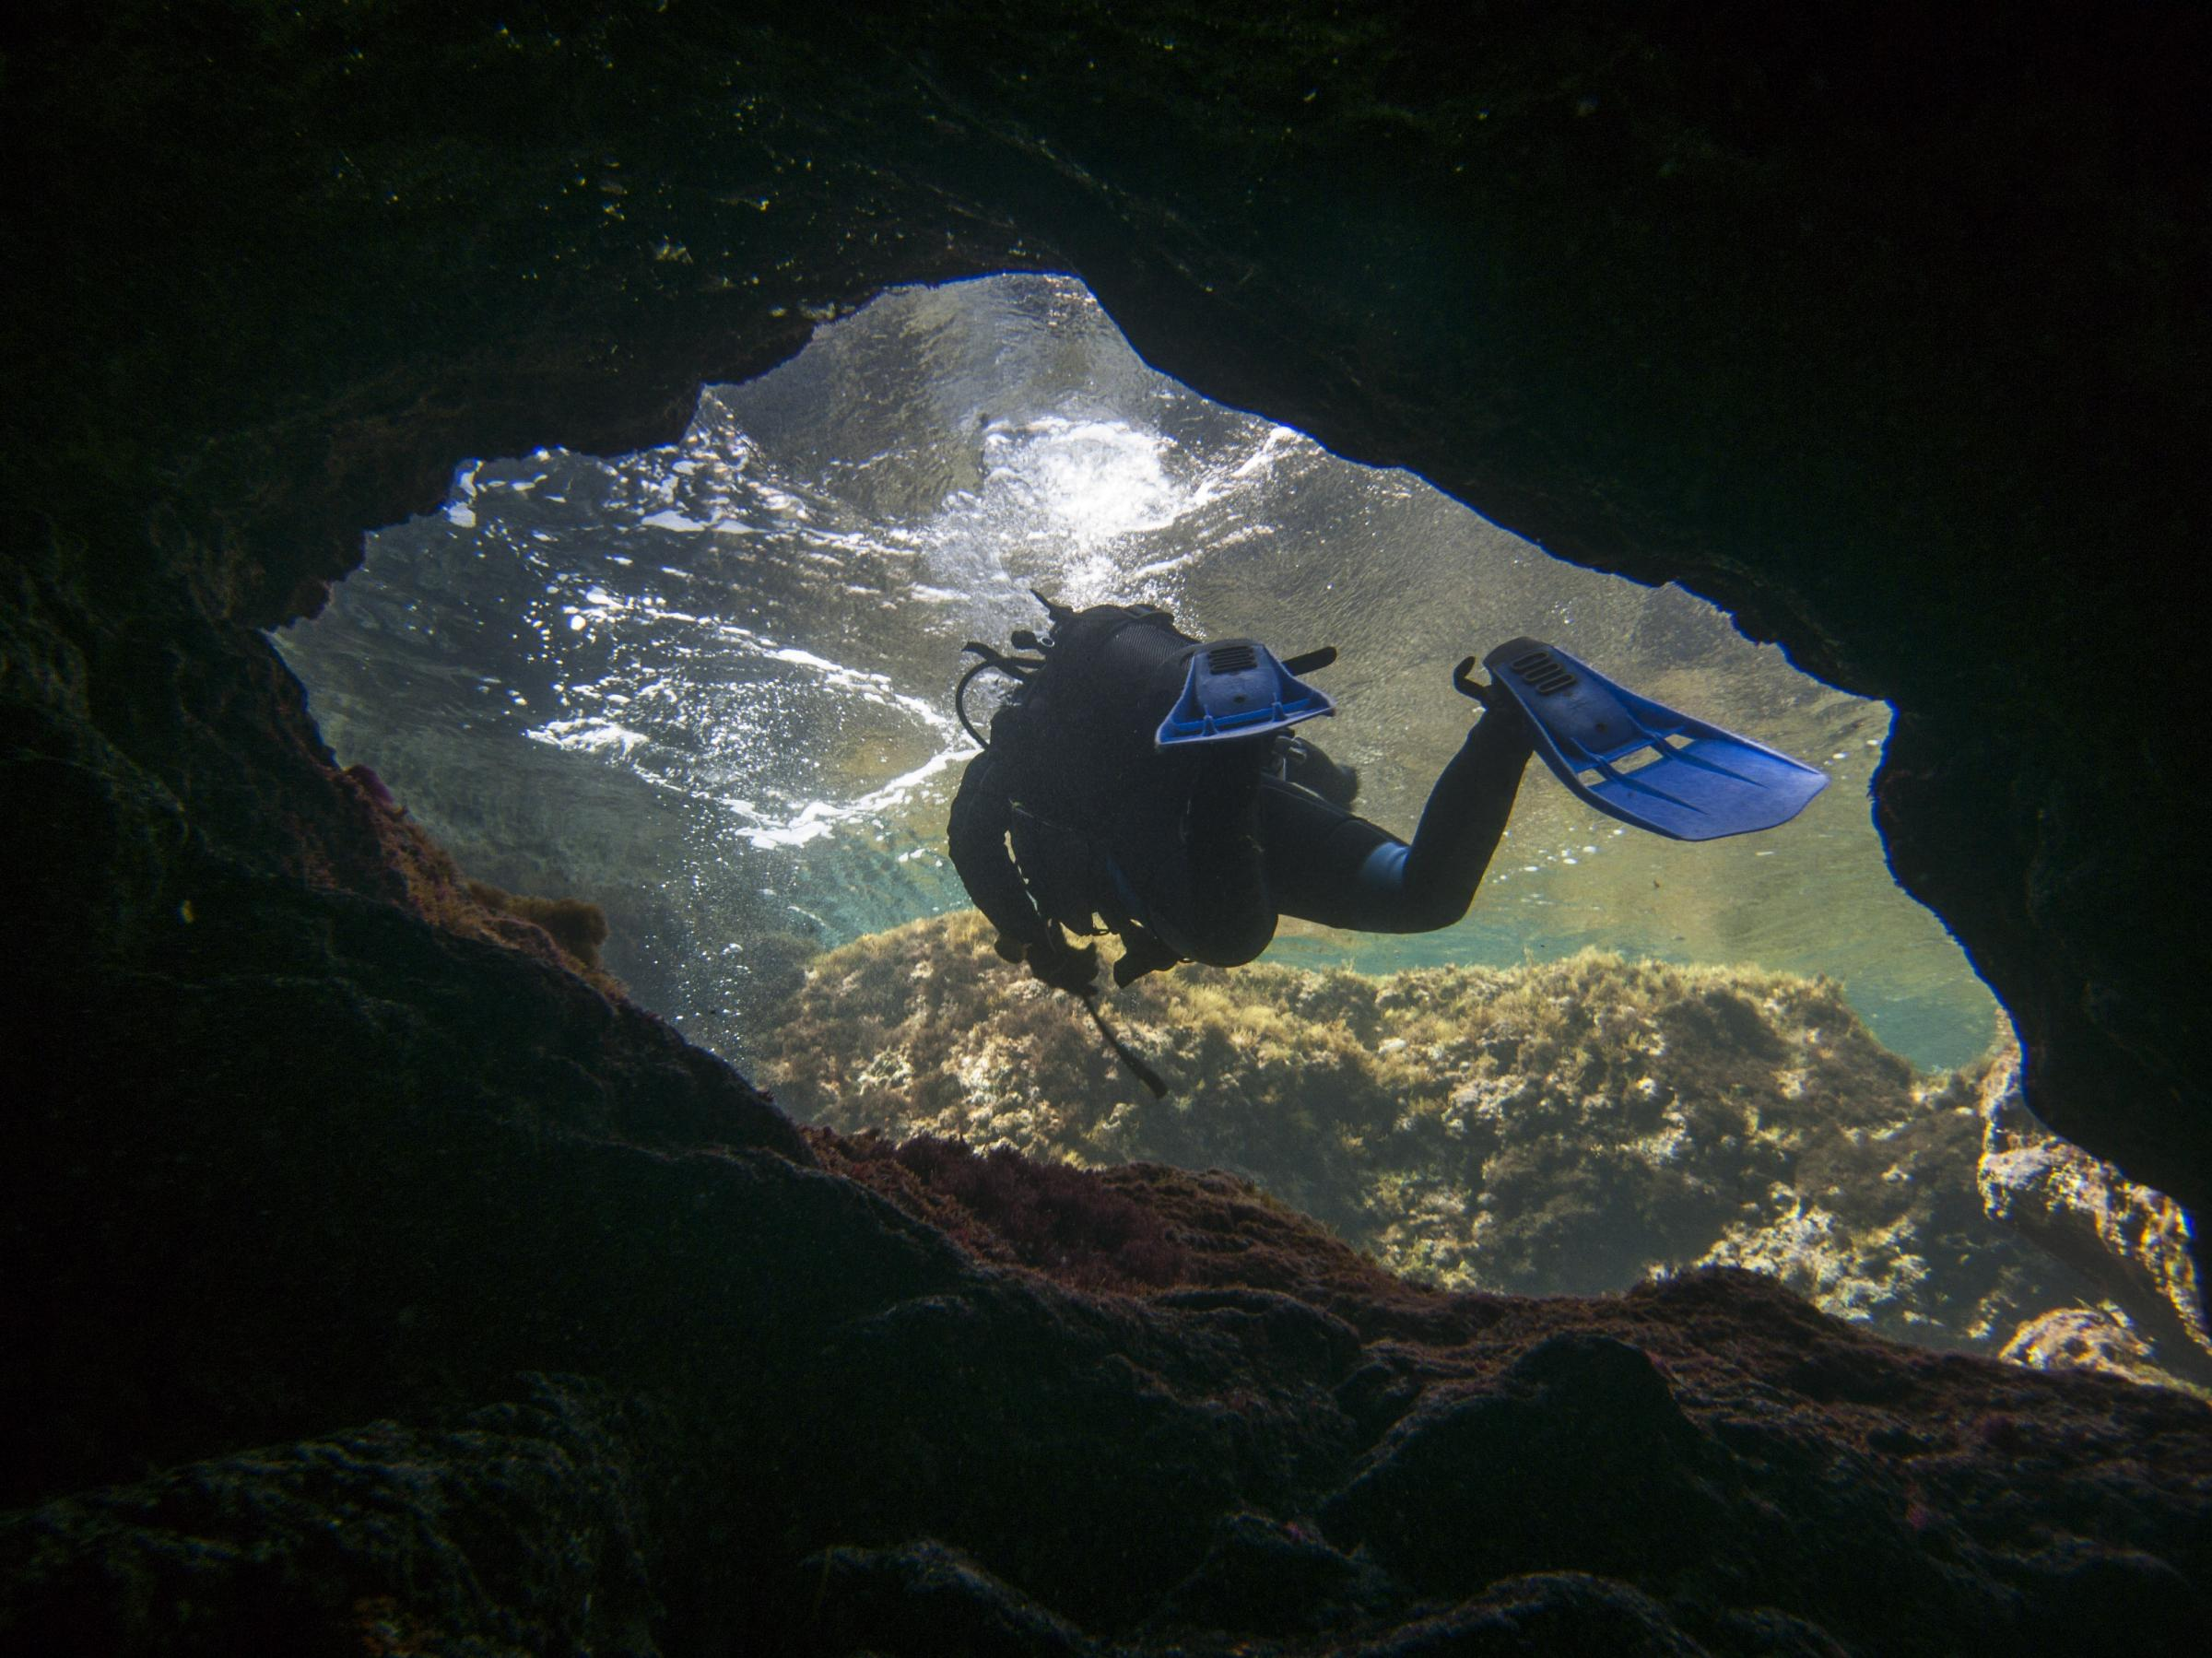 Diver exiting the cave in Ghar Lapsi